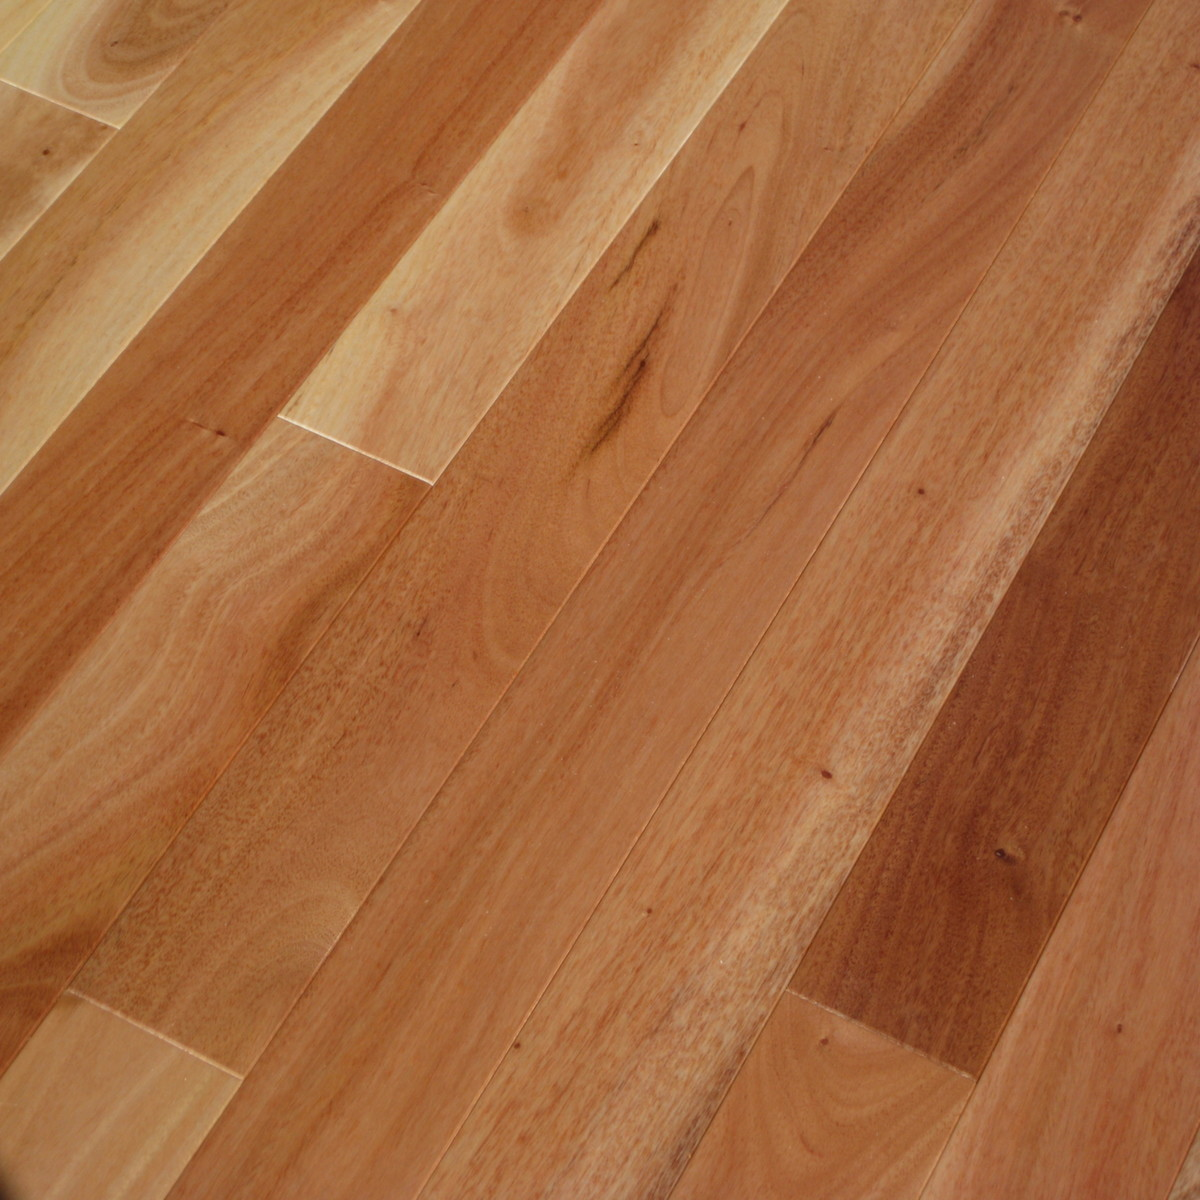 Amendoim hardwood flooring brazilian oak flooring for Floor and flooring